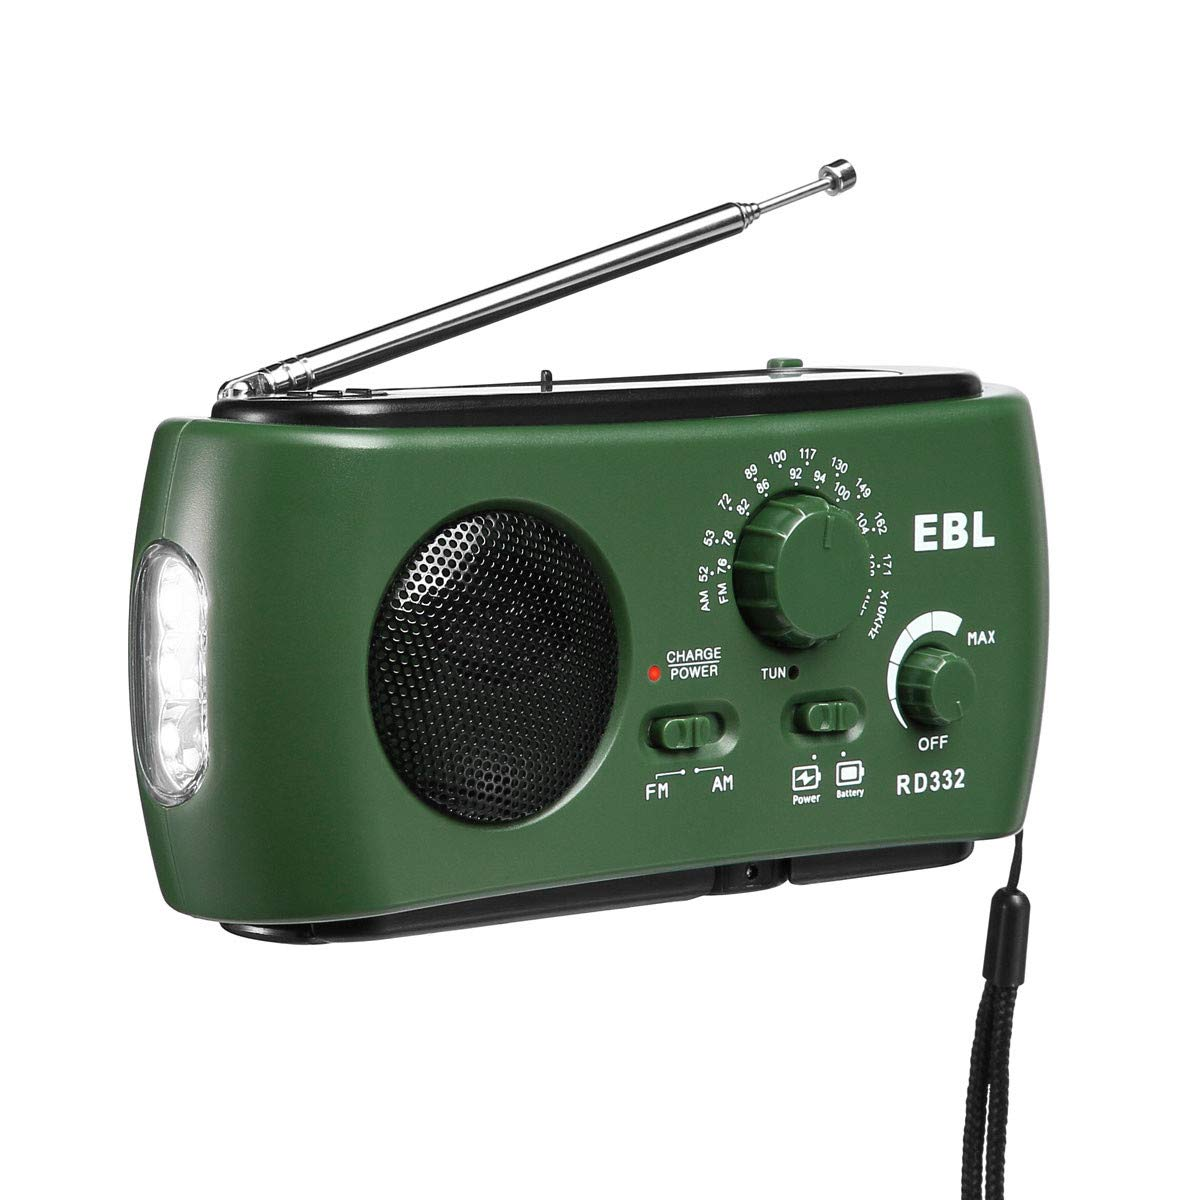 EBL Upgraded Portable Radio AM/FM Emergency Radio Compact Size with LED Flashlight Camp Solar/Hand Crank RADIO-332-GN